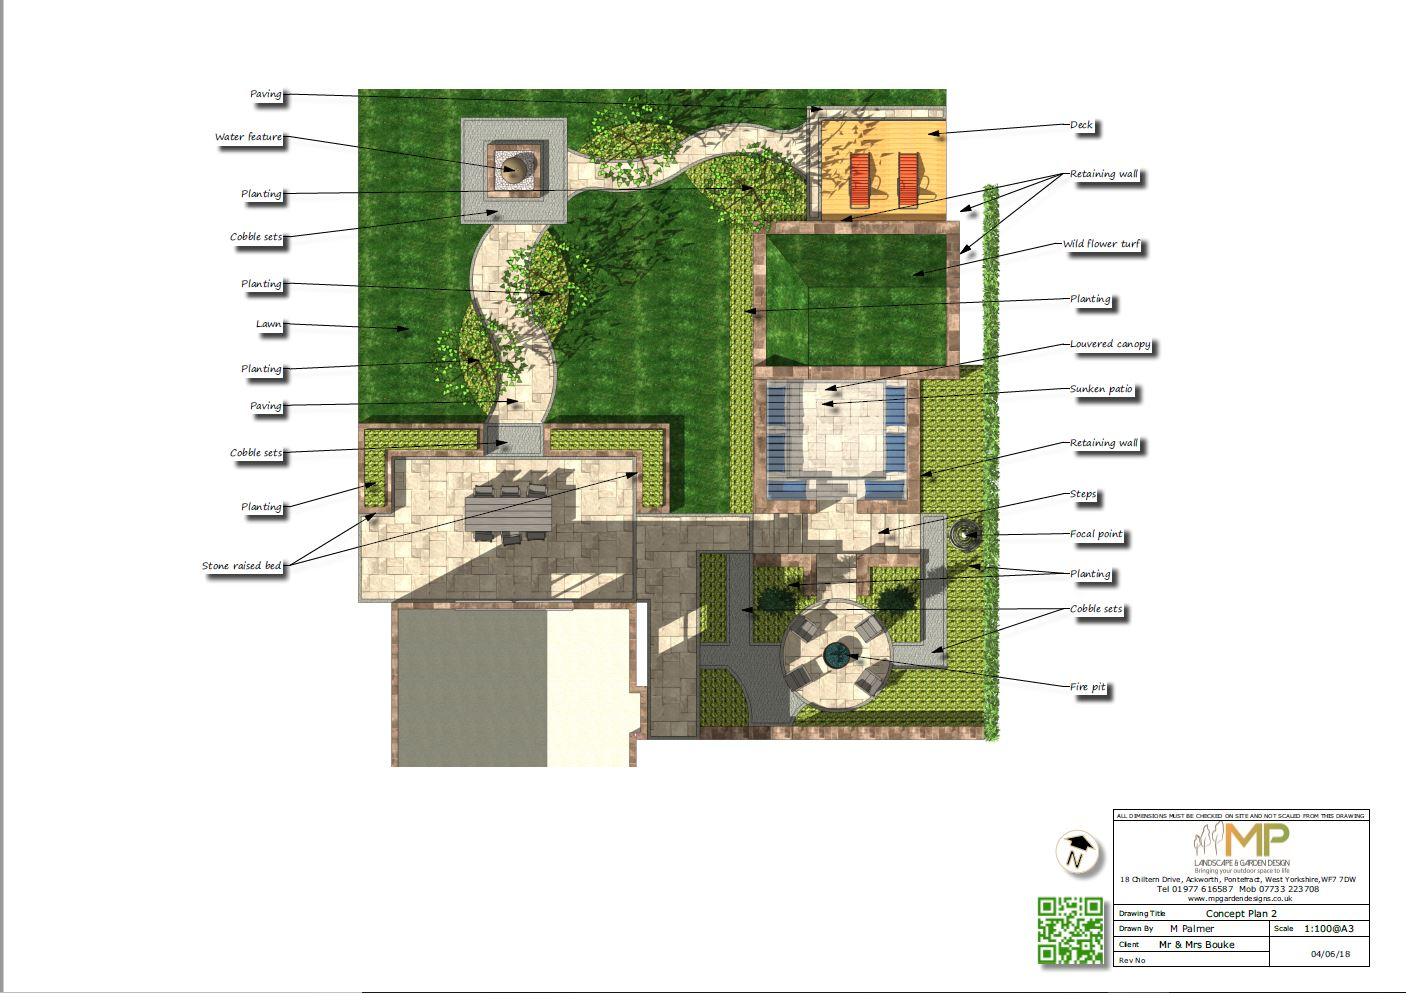 Concept plan-2 for part of a garden in Ackworth.